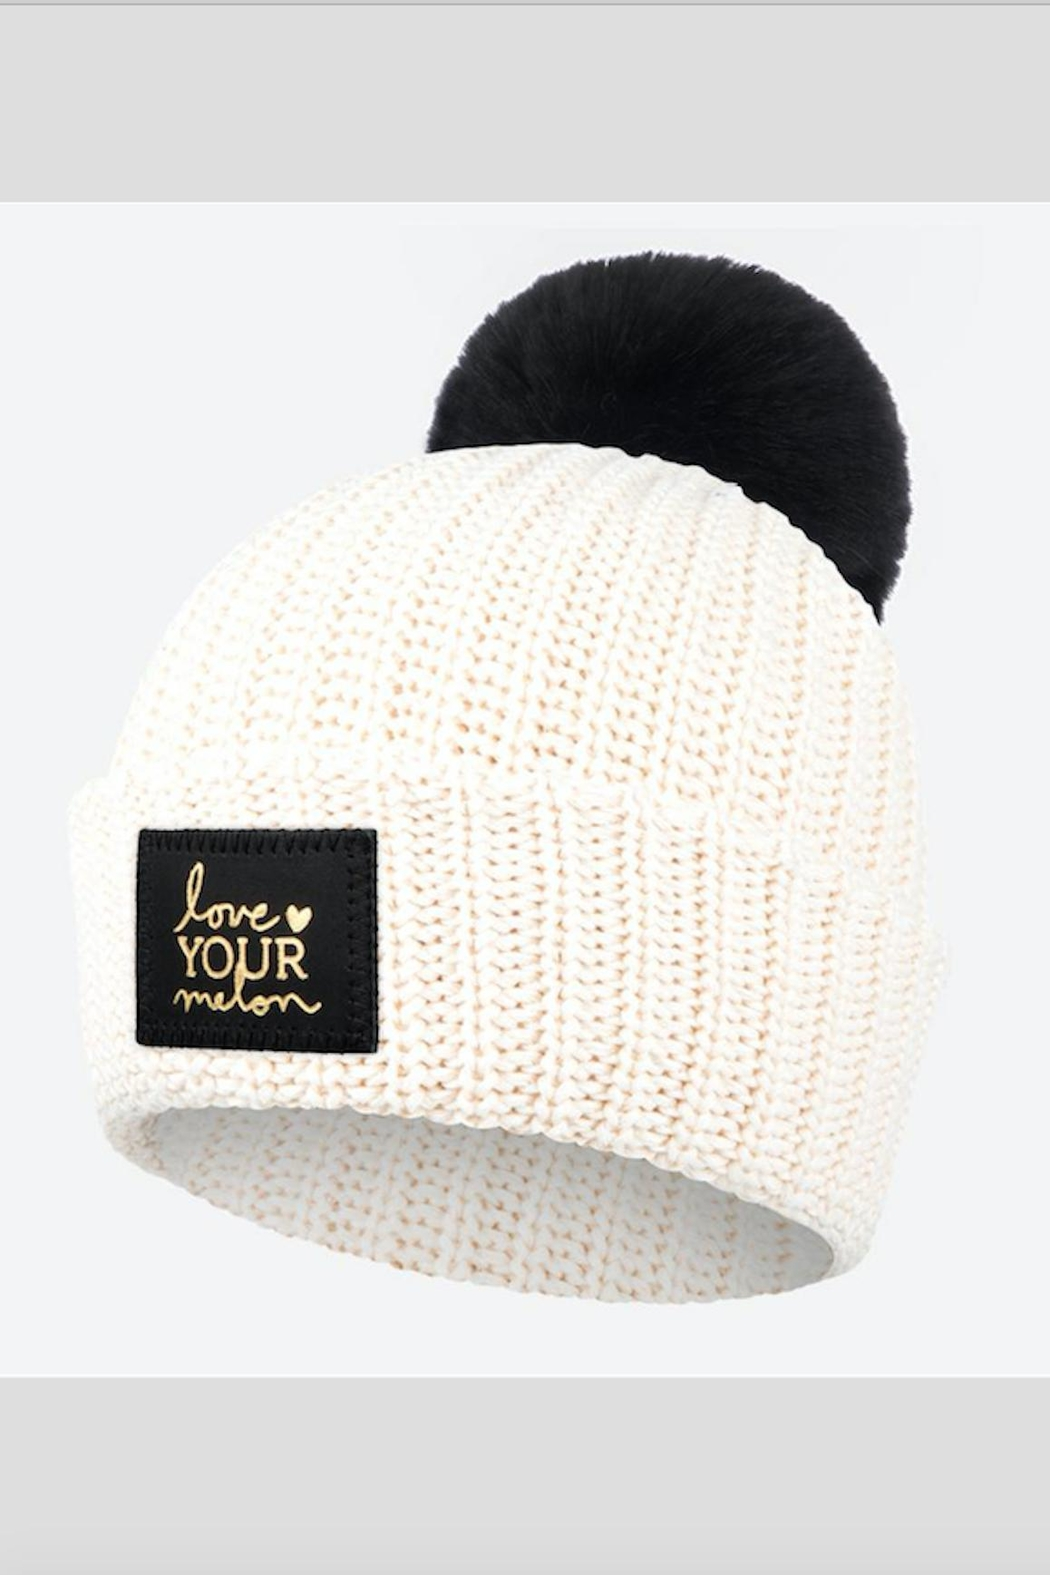 7265906c16b51 Love Your Melon Natural Foil Pom from New Jersey by Barefoot ...